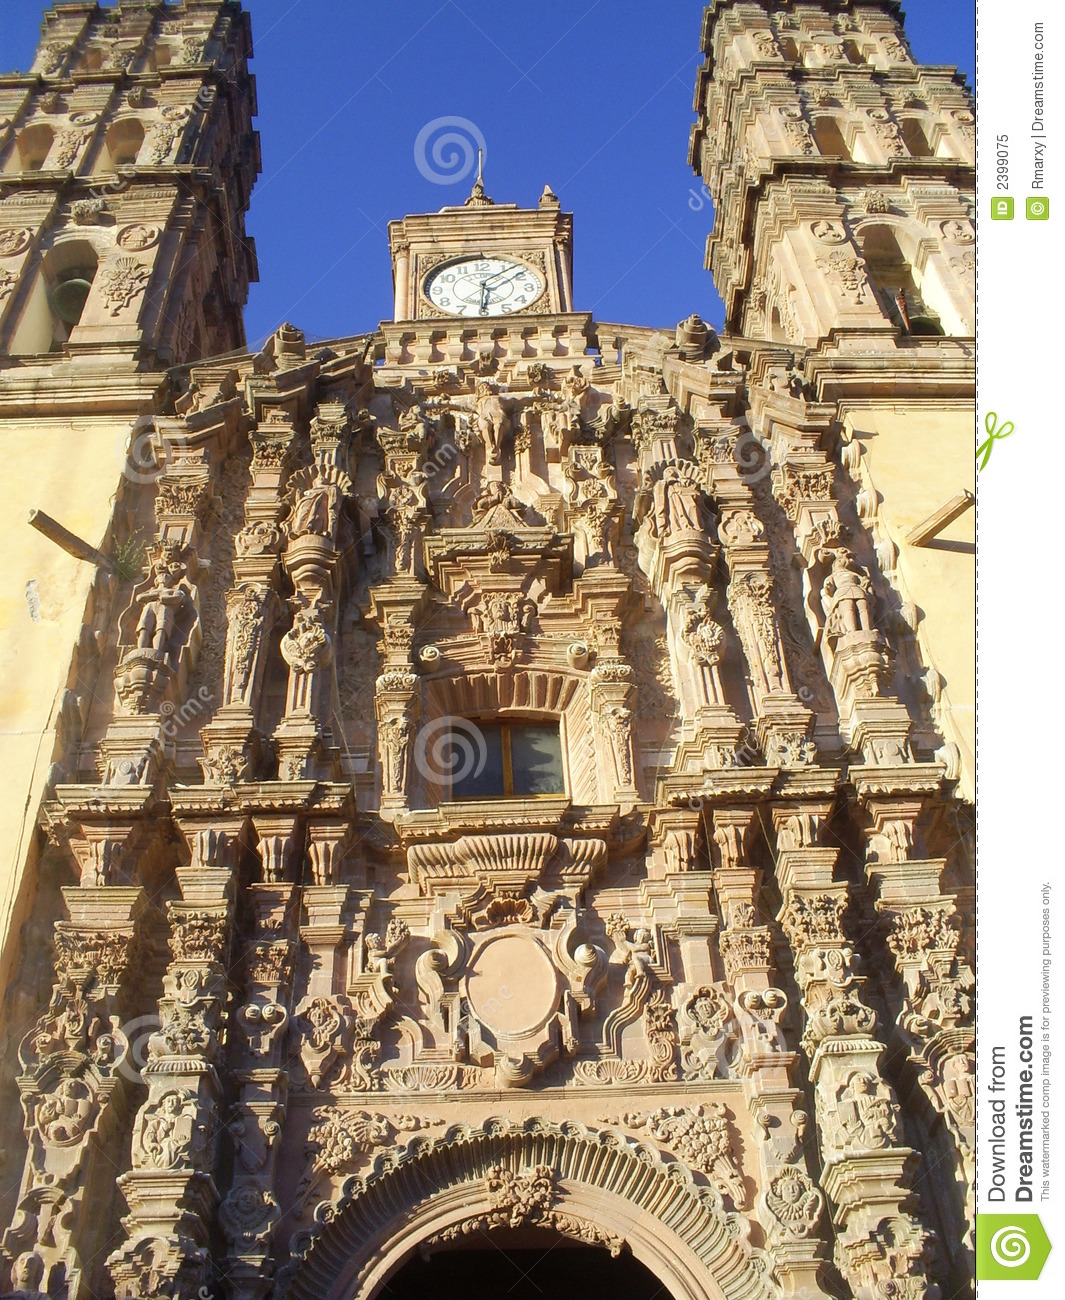 Baroque architecture stock image image of carvings for Architecture classique definition